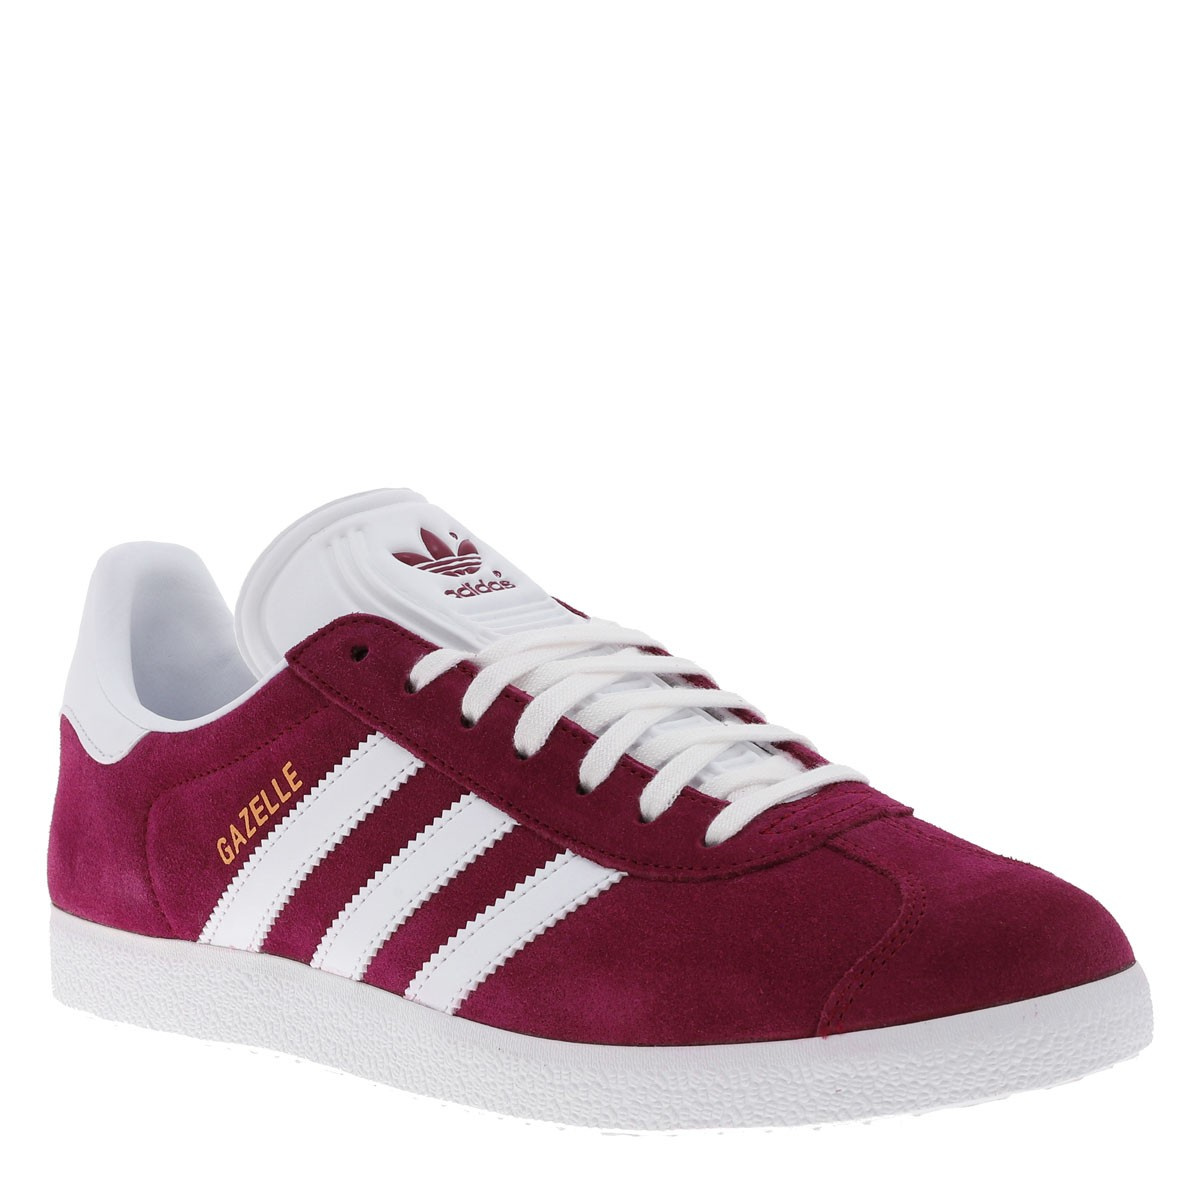 ADIDAS ORIGINALS Baskets Gazelle homme rouge